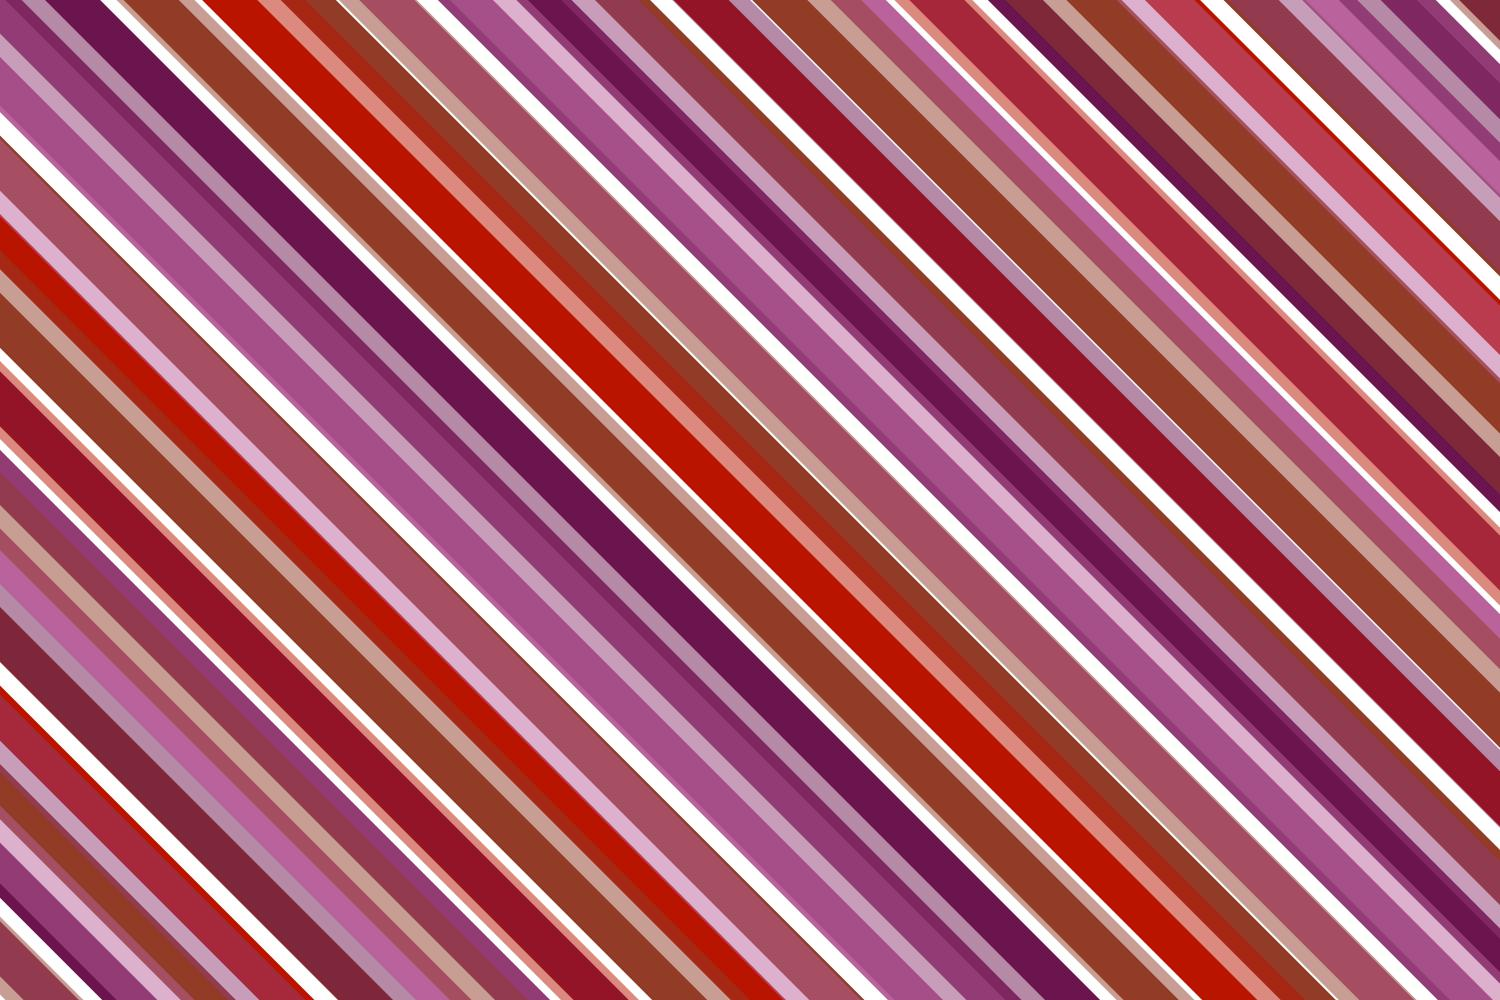 Download Free Diagonal Stripe Background Graphic By Davidzydd Creative Fabrica for Cricut Explore, Silhouette and other cutting machines.